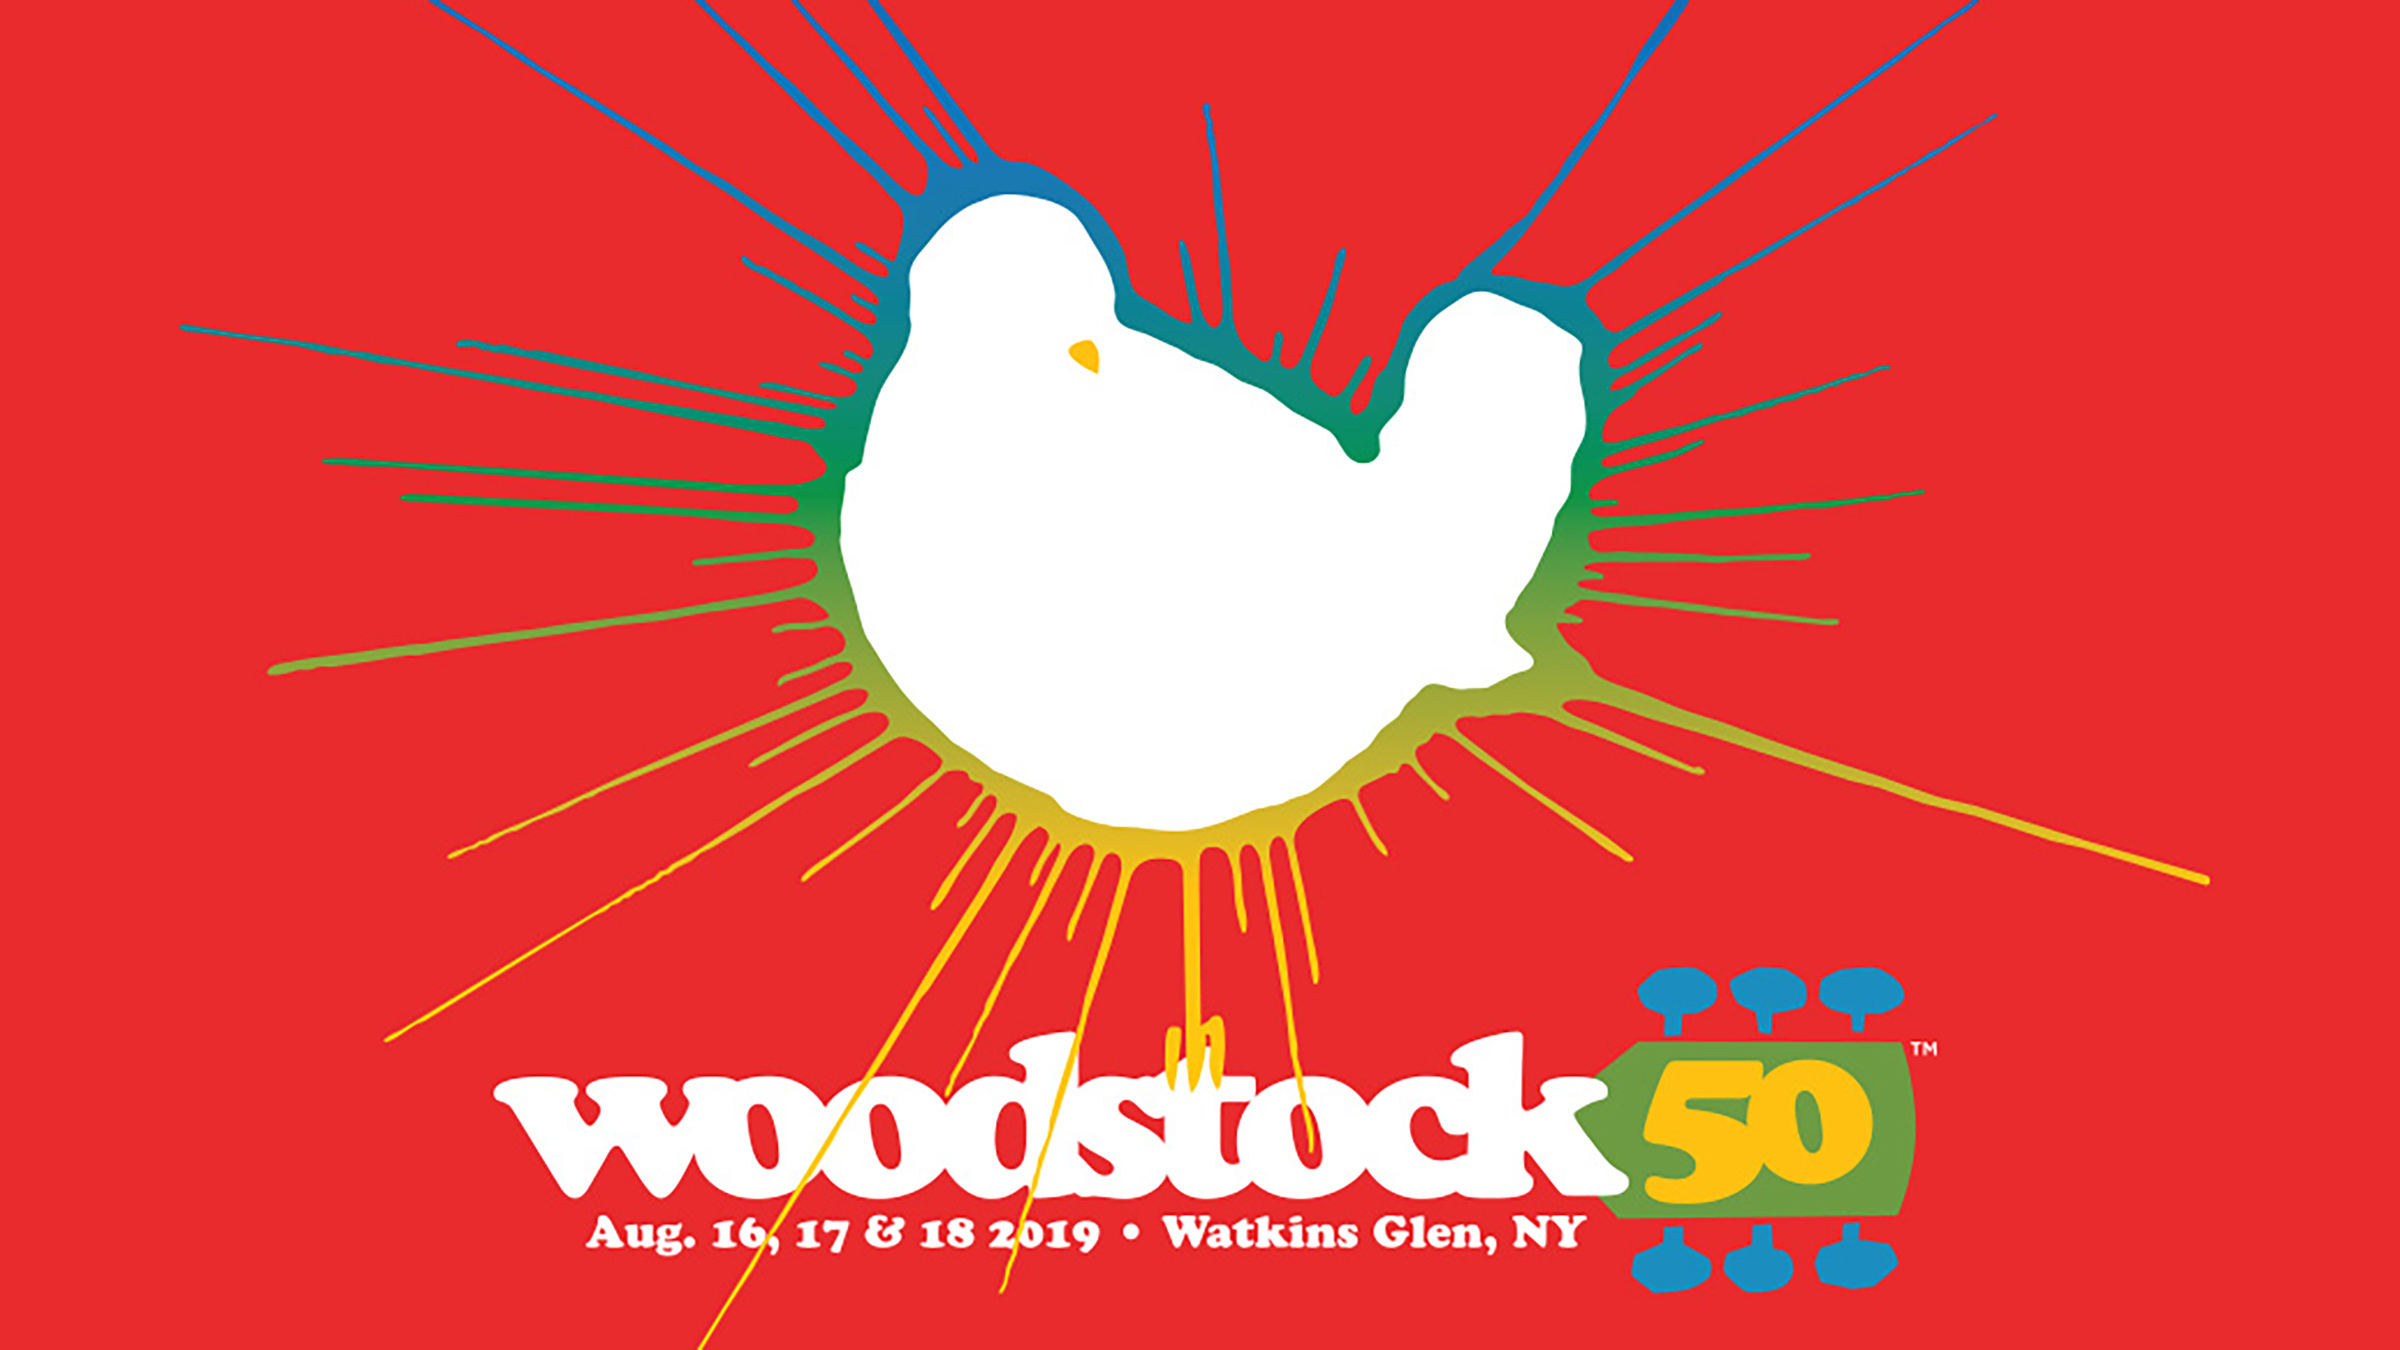 Woodstock 50 Officially Cancels 2019 Anniversary Festival in Watkins Glen